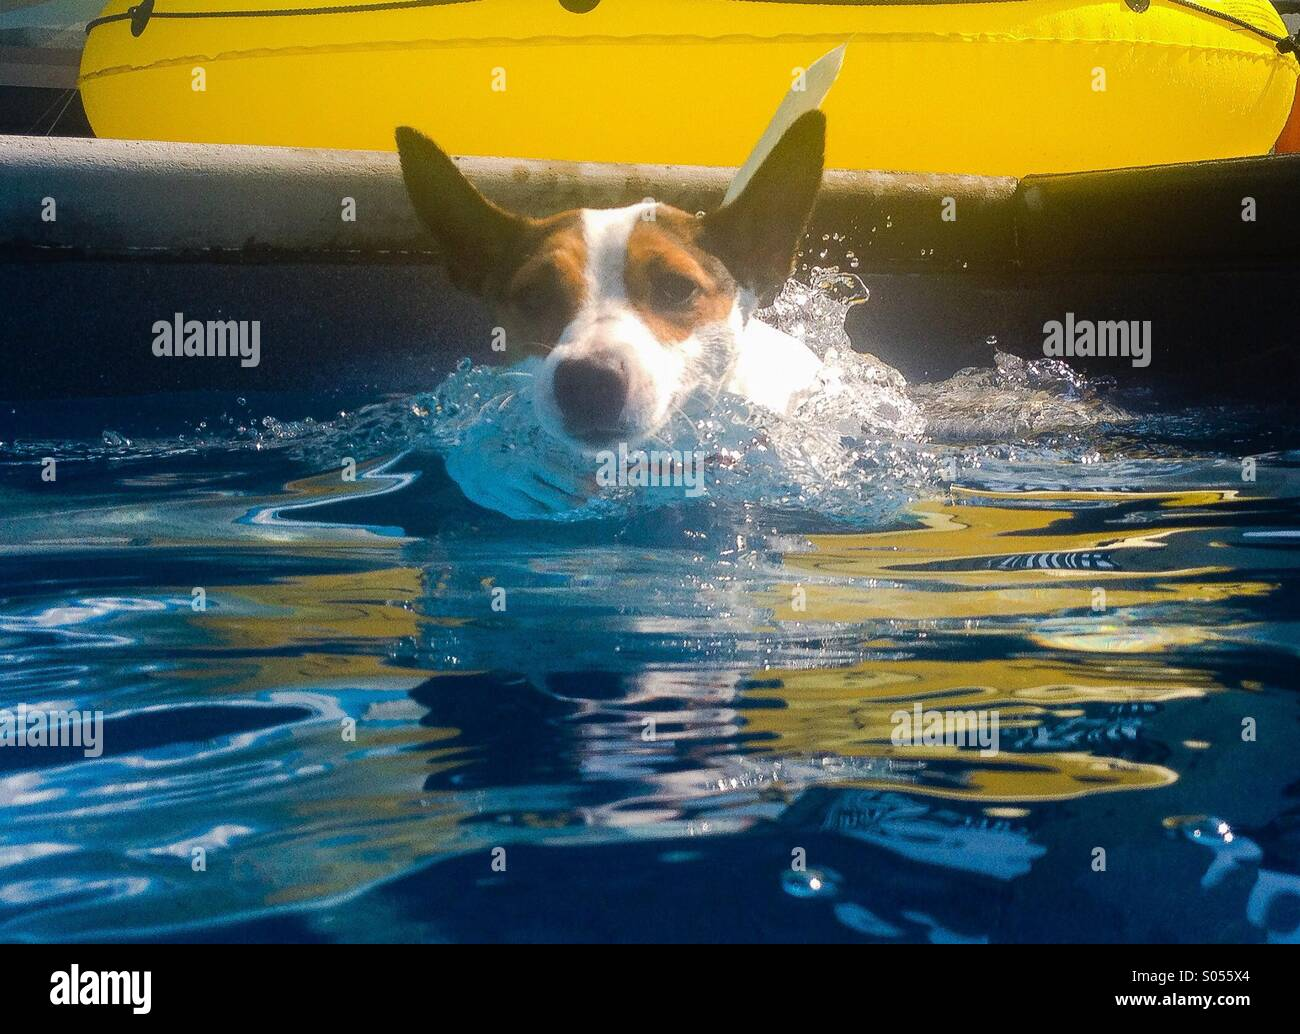 Terrier Making Stock Photos & Terrier Making Stock Images - Alamy